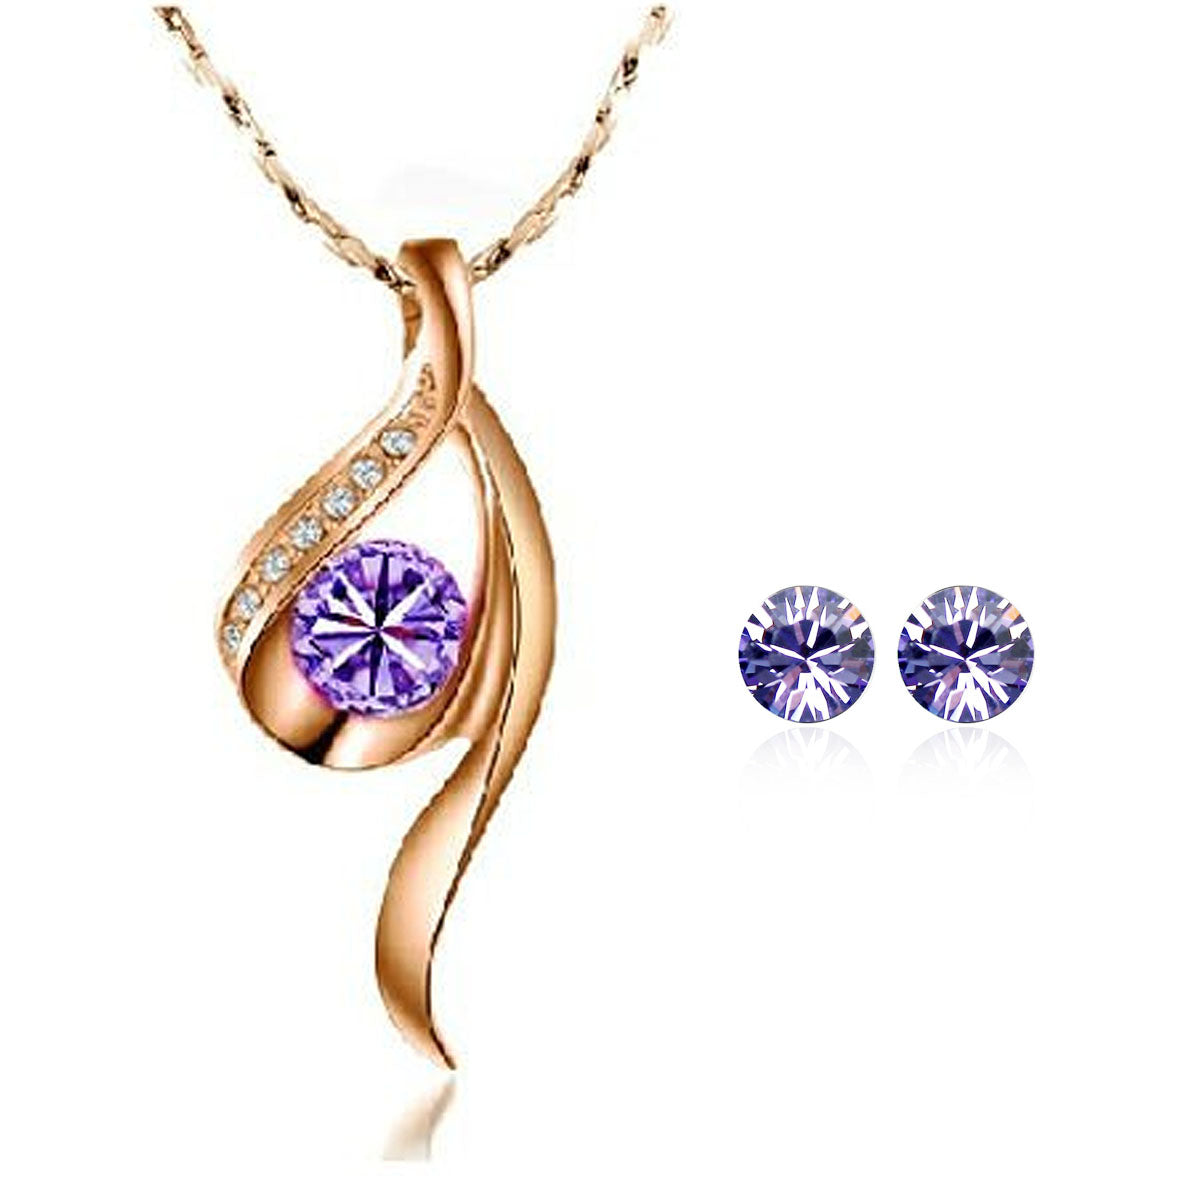 Wrapables Gold Tone Purple True Elegance Crystal Necklace and Stud Earrings Jewelry Set